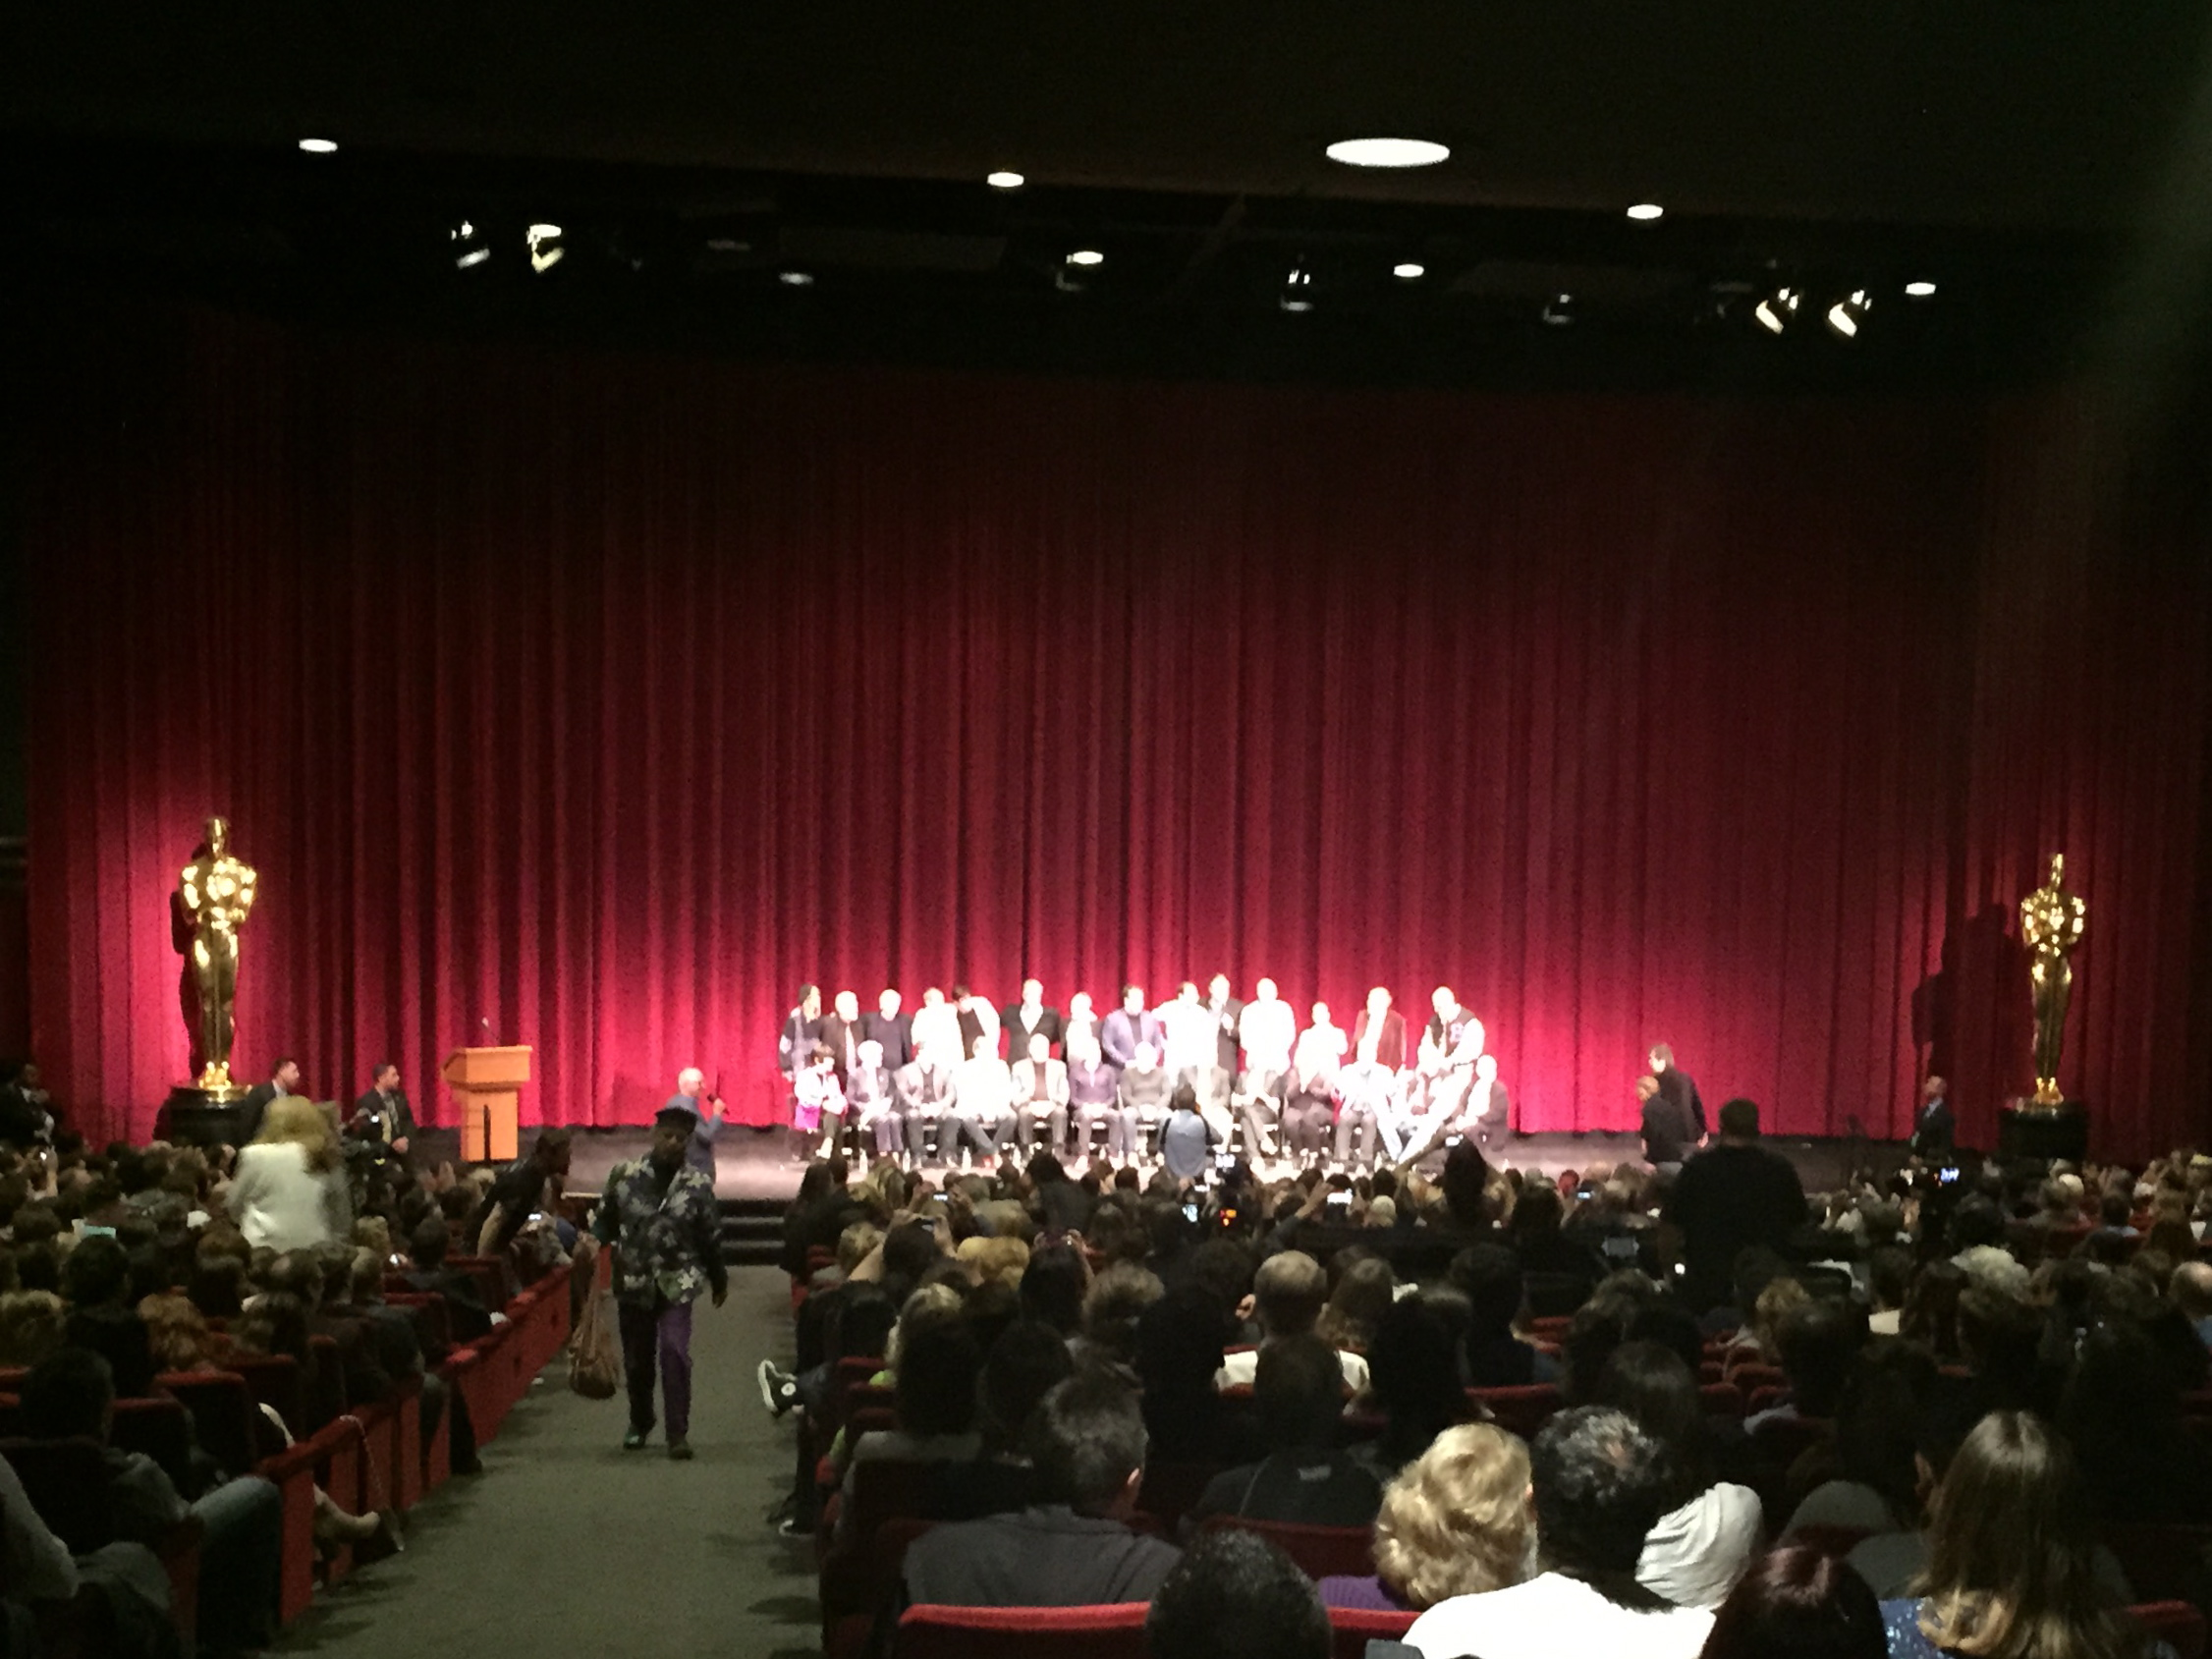 """The """"Class of 1991"""" included panelists and other personnel from the film."""